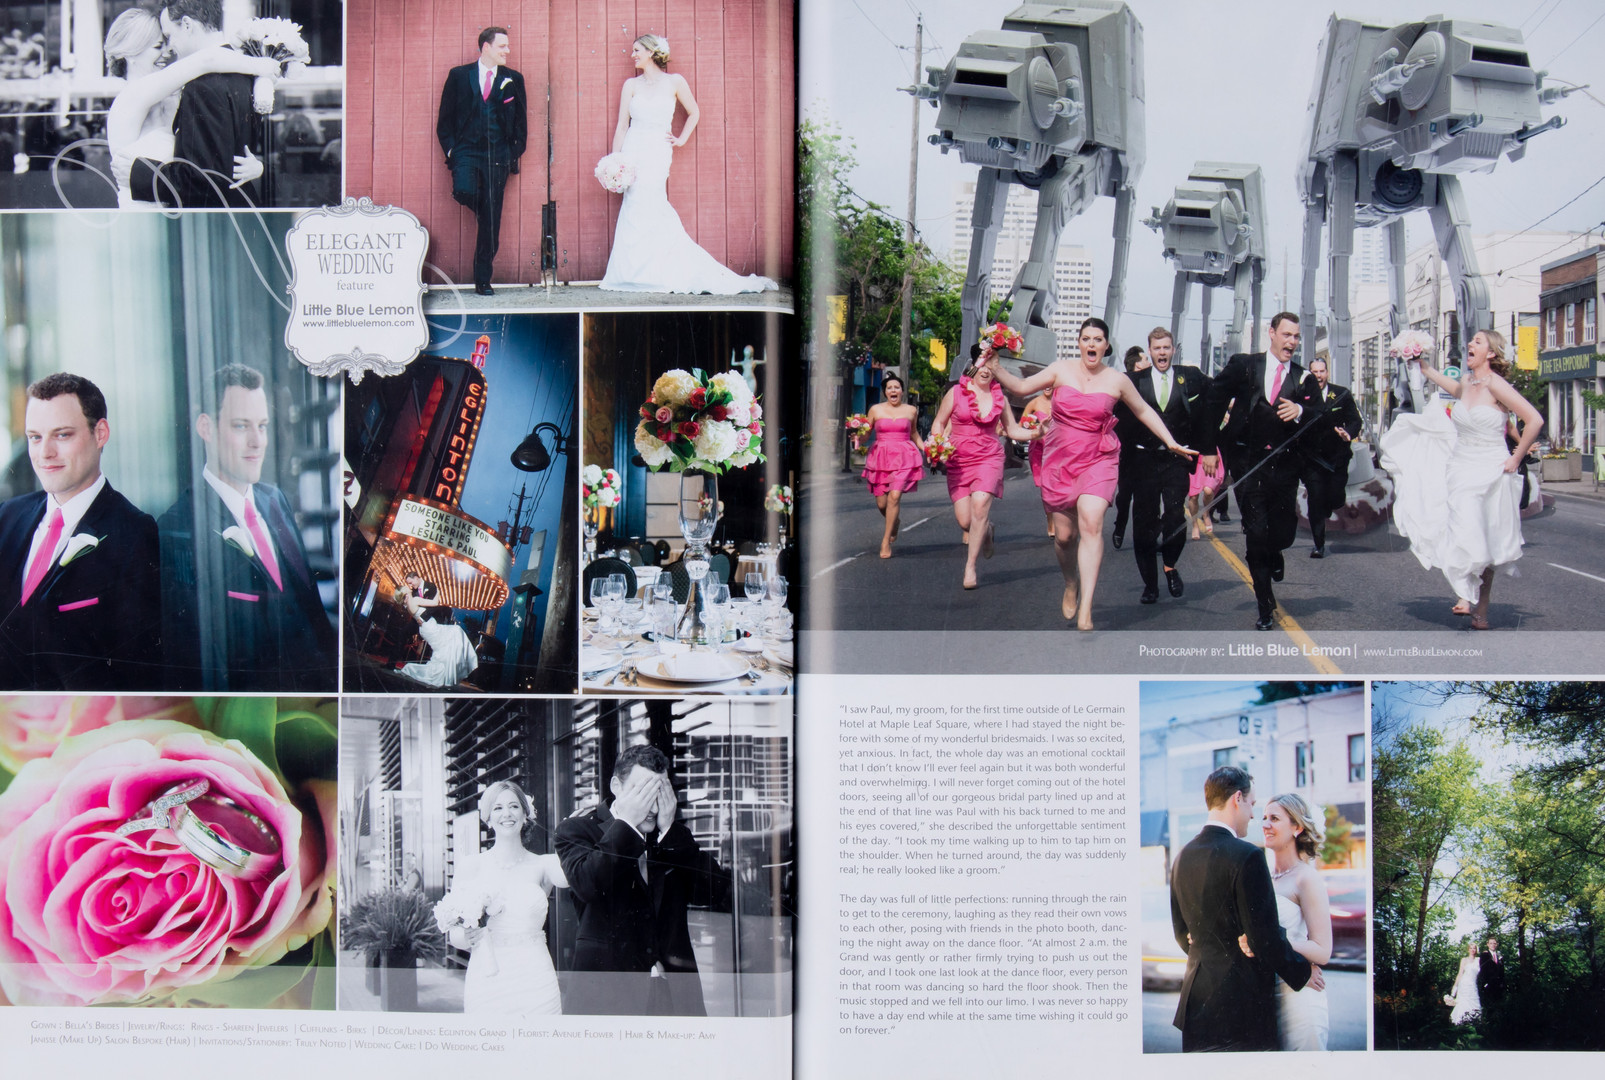 Best wedding photographers Toronto Little Blue Lemon publish famous Star Wars AT-AT photo